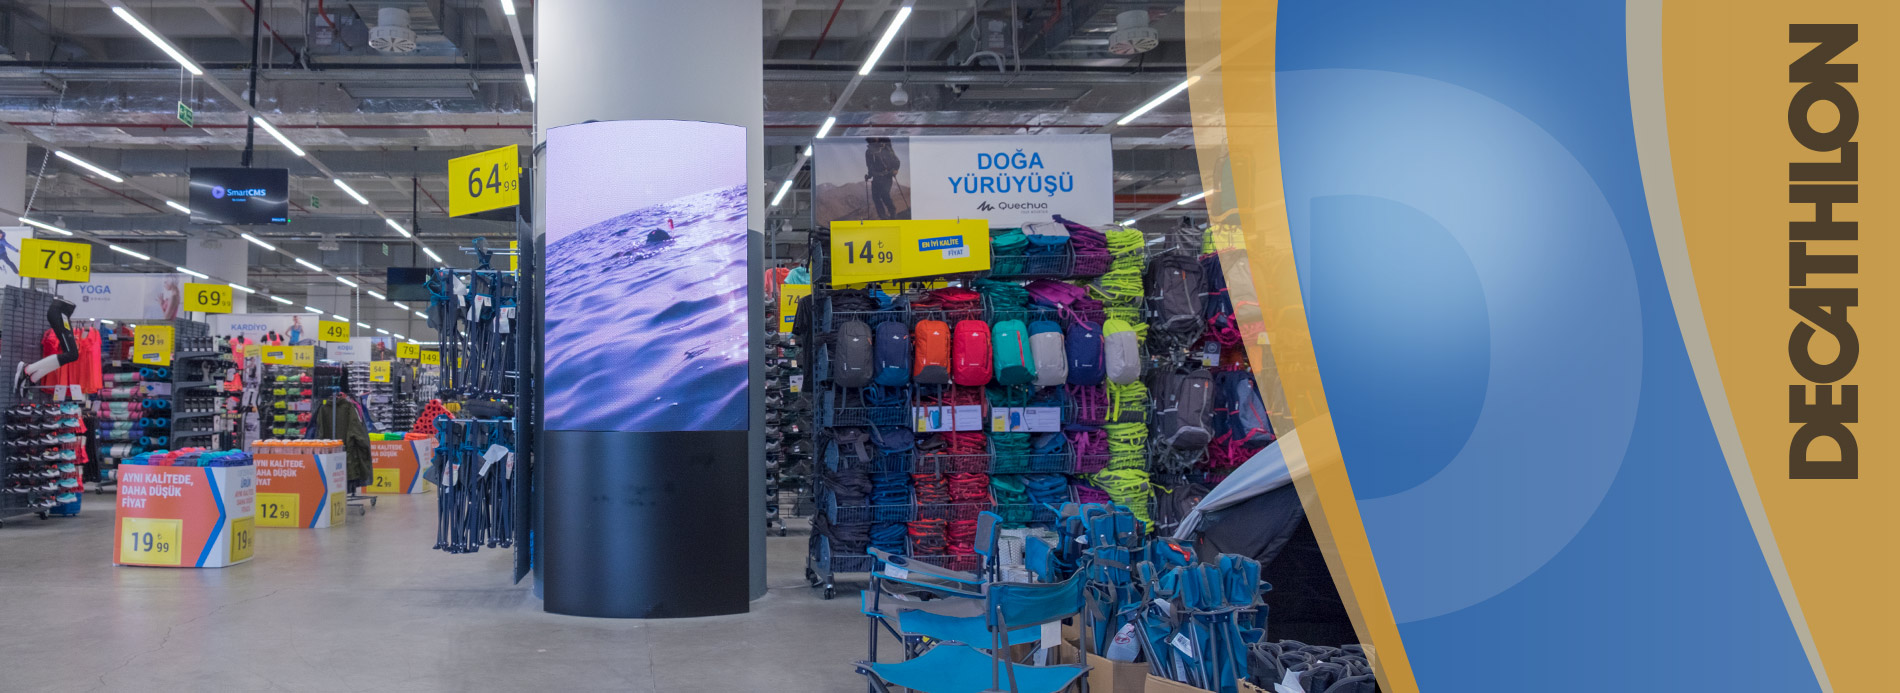 Decathlon Led Screen Project